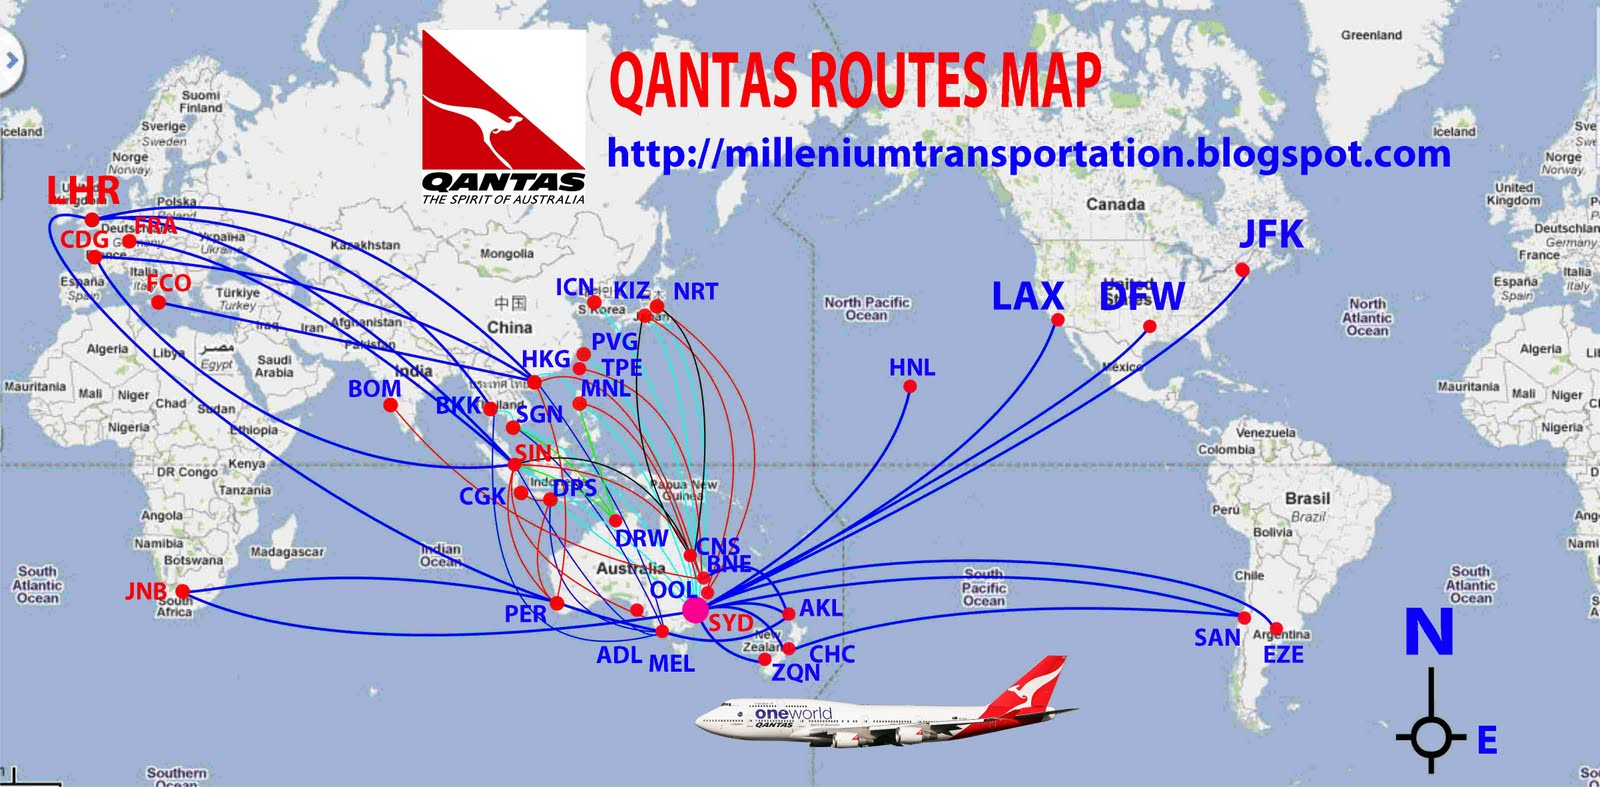 Qantas Route Map Qantas routes map | Design Plane